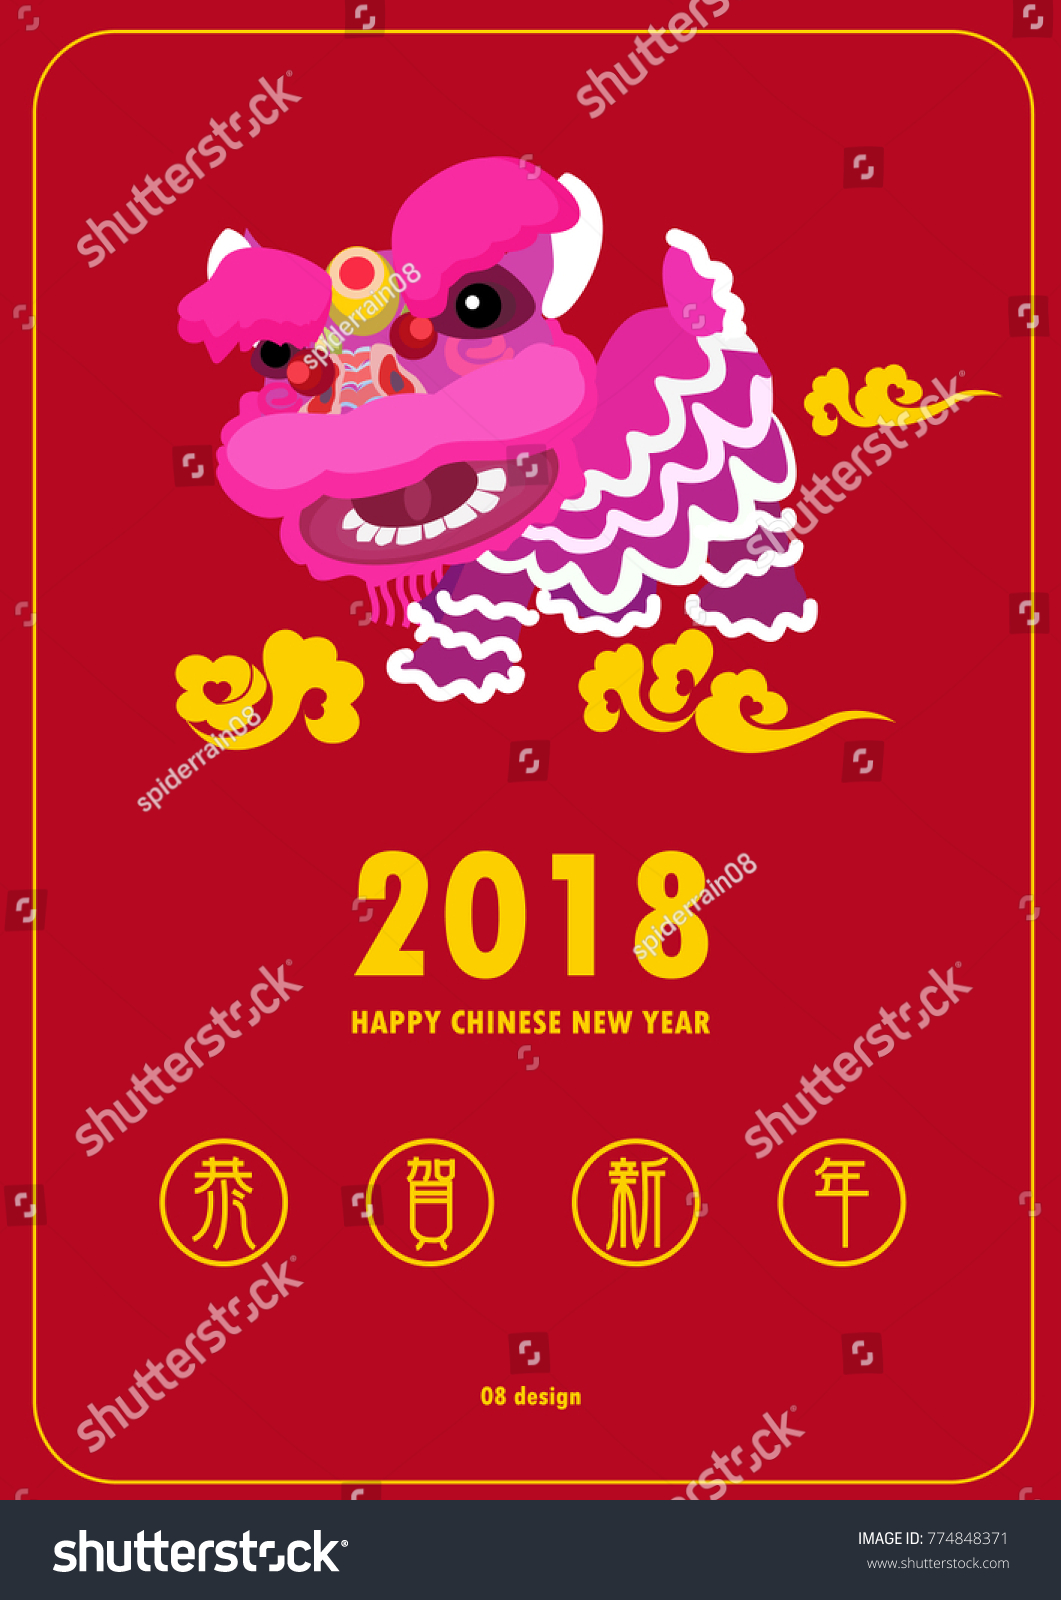 stock vector chinese new year lion dance happy new year kung hei fat choi jpg 1061x1600